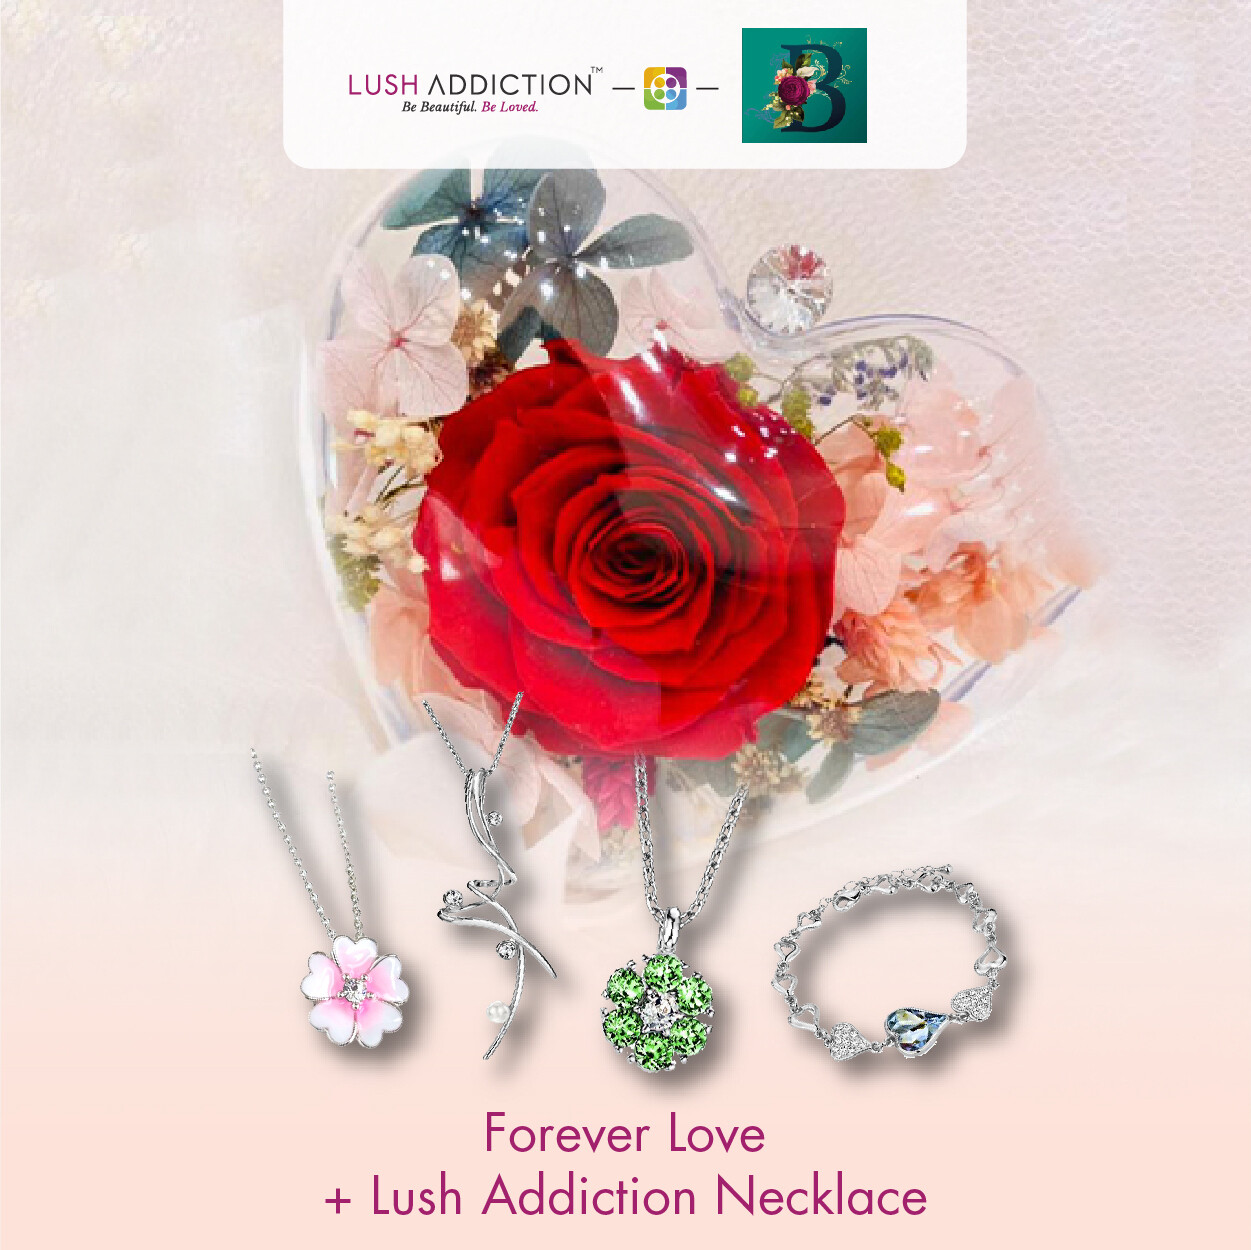 Forever Love Bouquet + Lush Addiction Necklace (By: The Bliss Florist from Melaka)